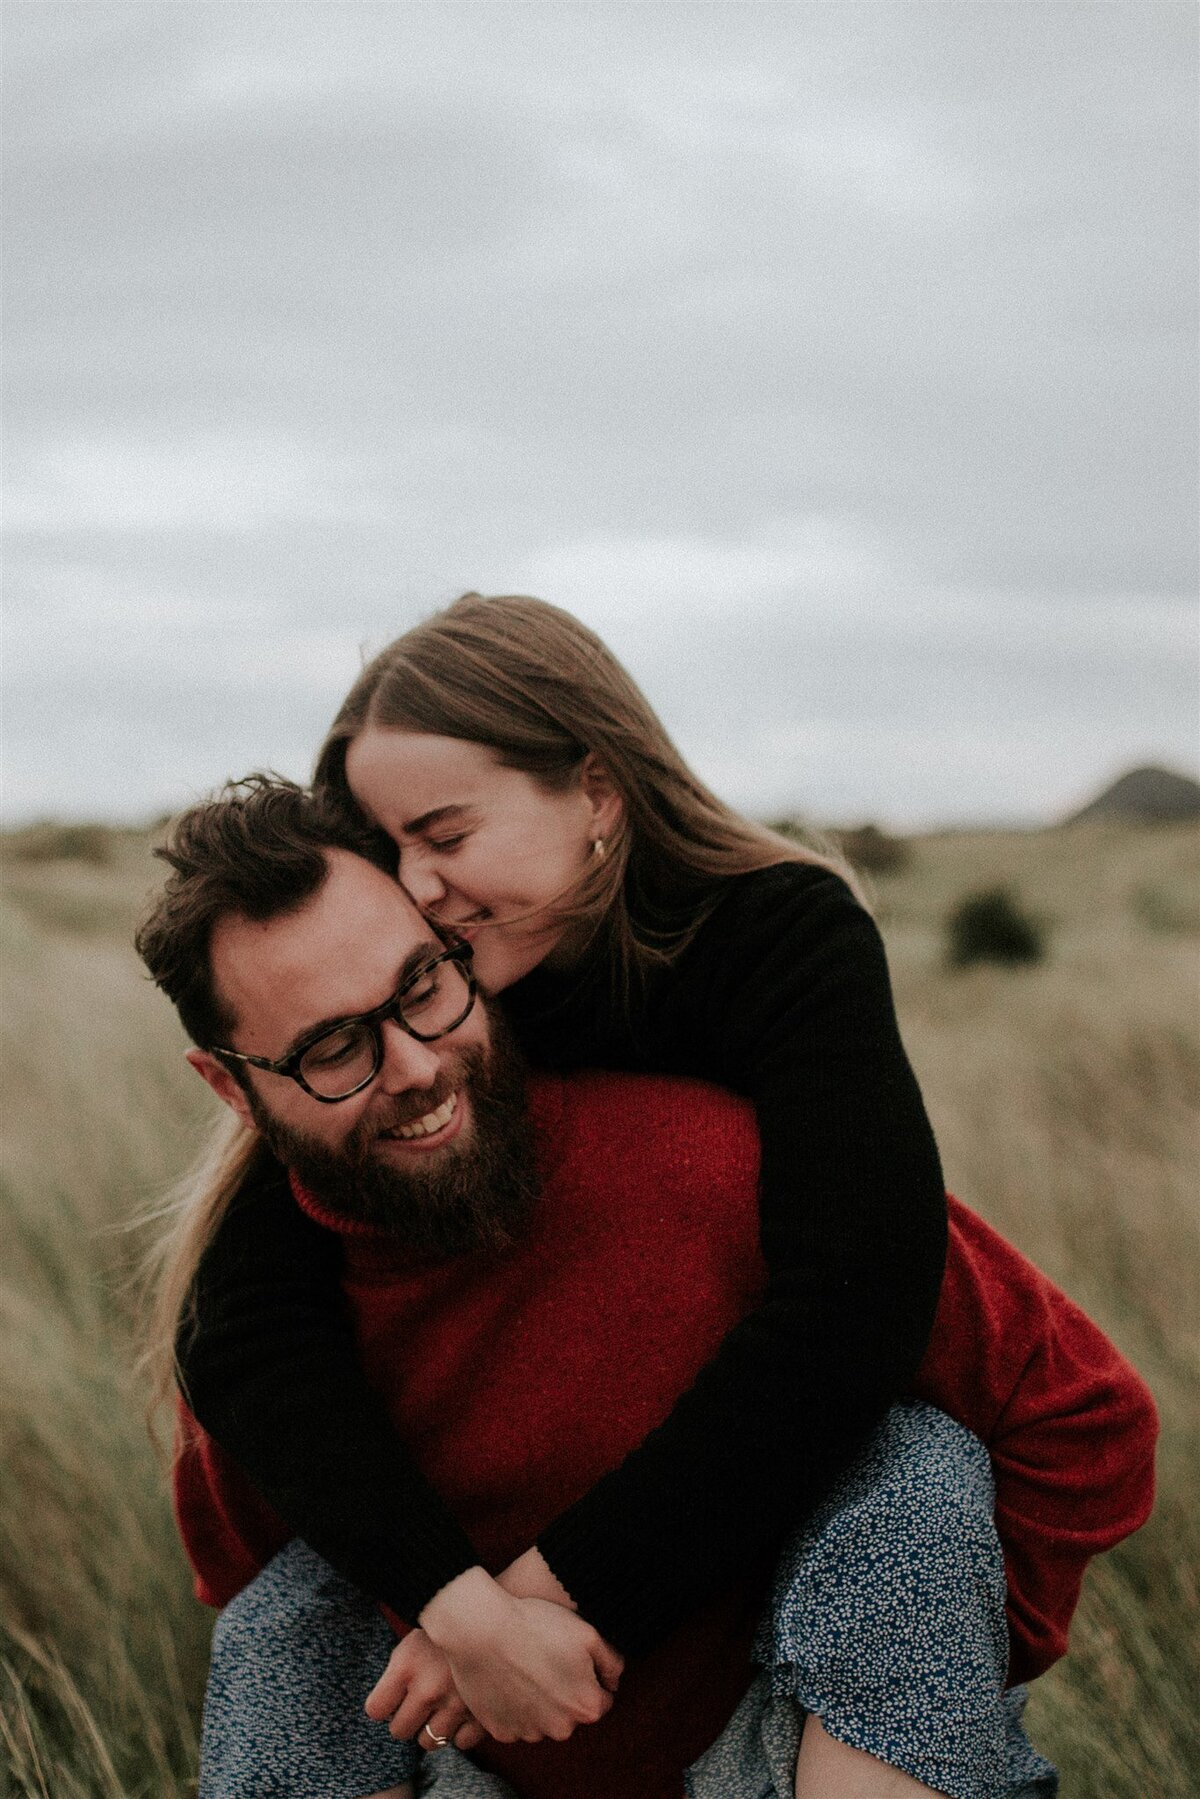 Brizzy-Rose-and-Emma-North-Berwick-Scotland-Couples-Session-5